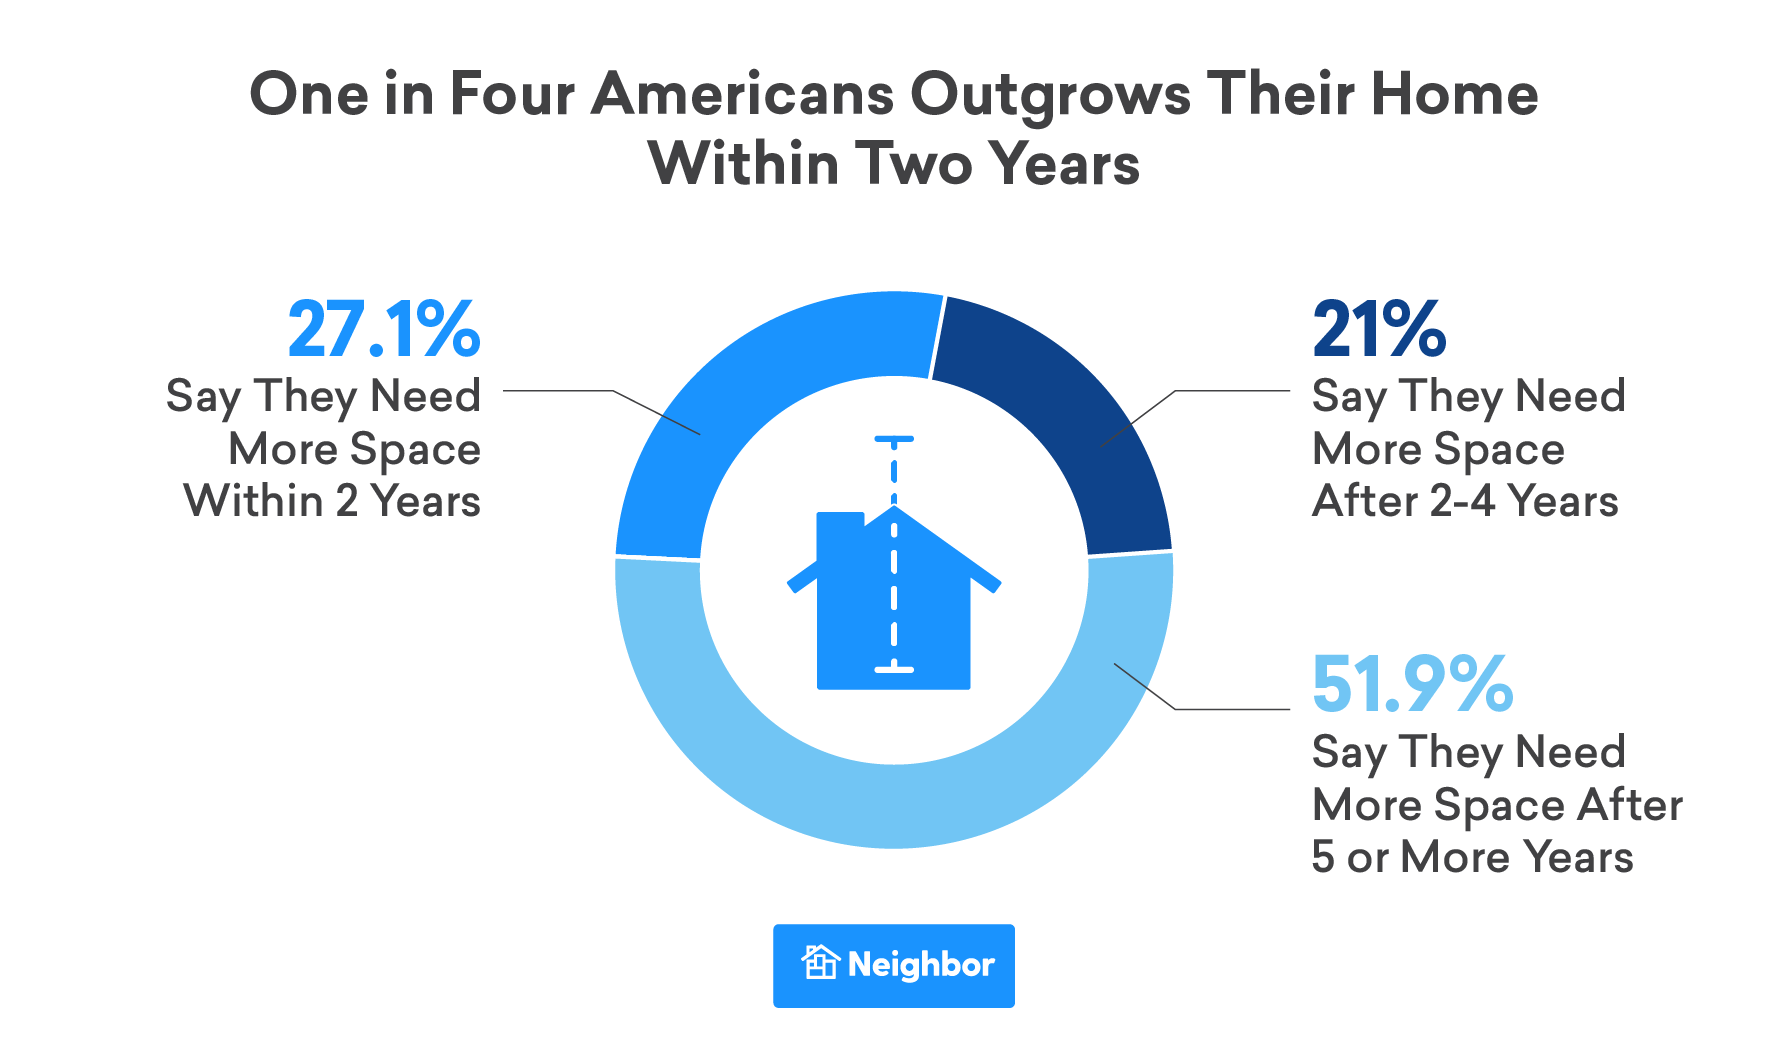 One in Four Americans Outgrow Their Homes Within Two Years